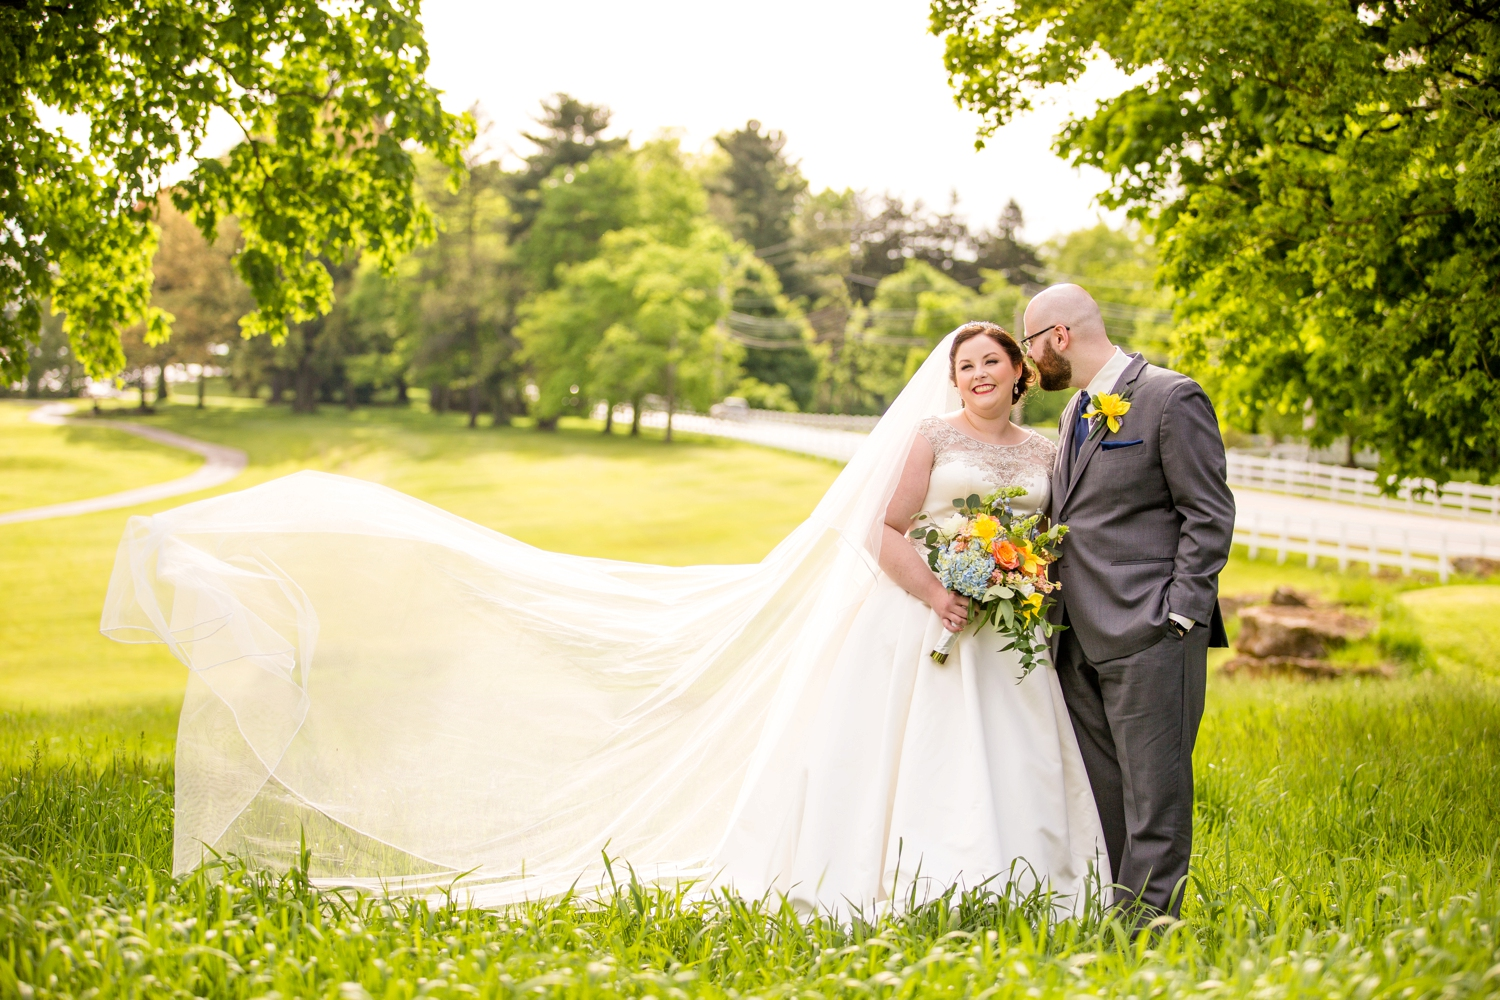 montour heights country club wedding pictures, pittsburgh wedding photographer, pittsburgh engagement photographer, mhcc wedding pictures